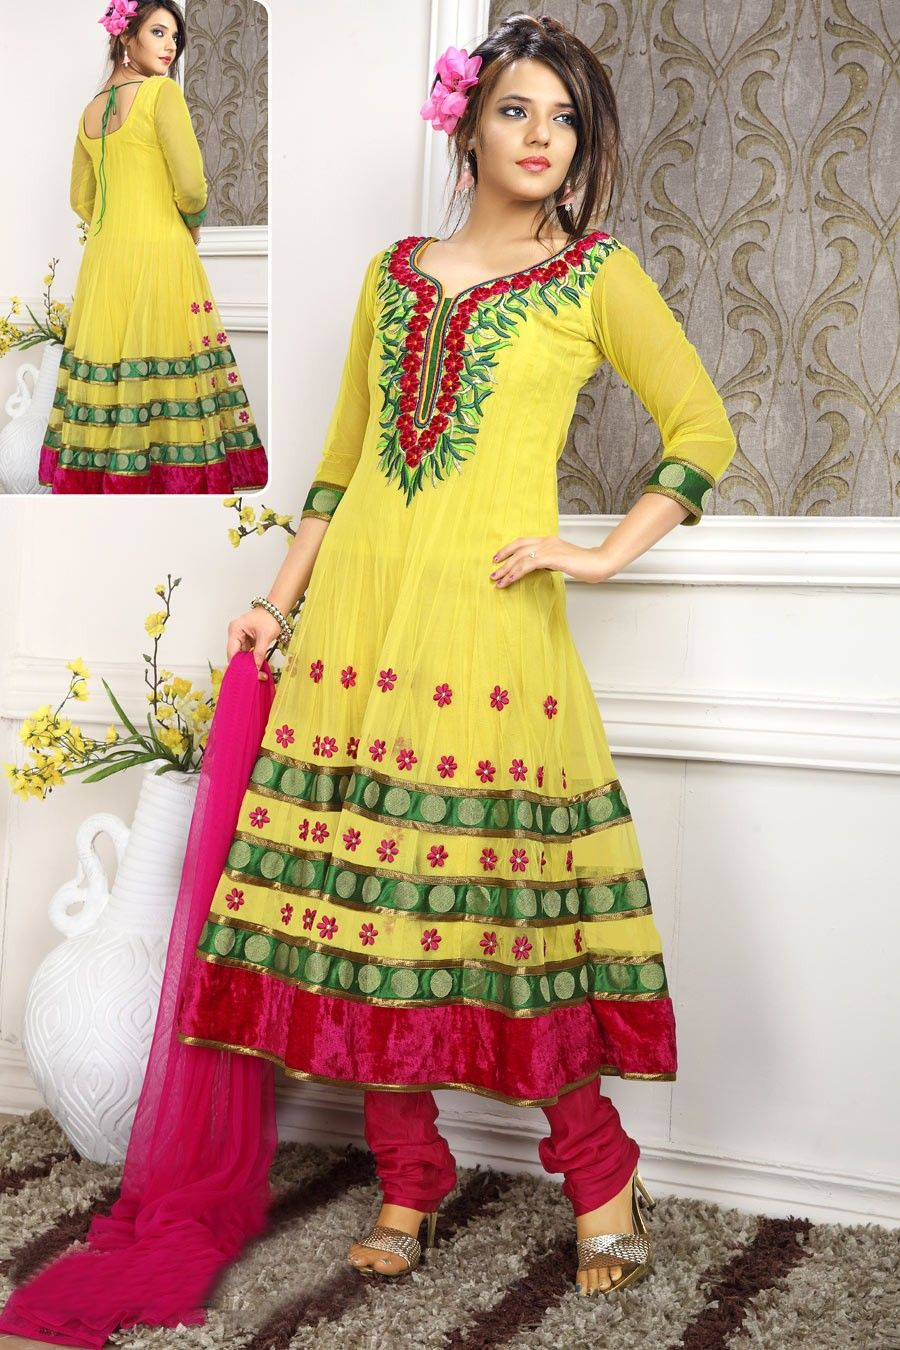 A Salwar Kameez Shops and Best Place to Buy Salwar Suit Online ...